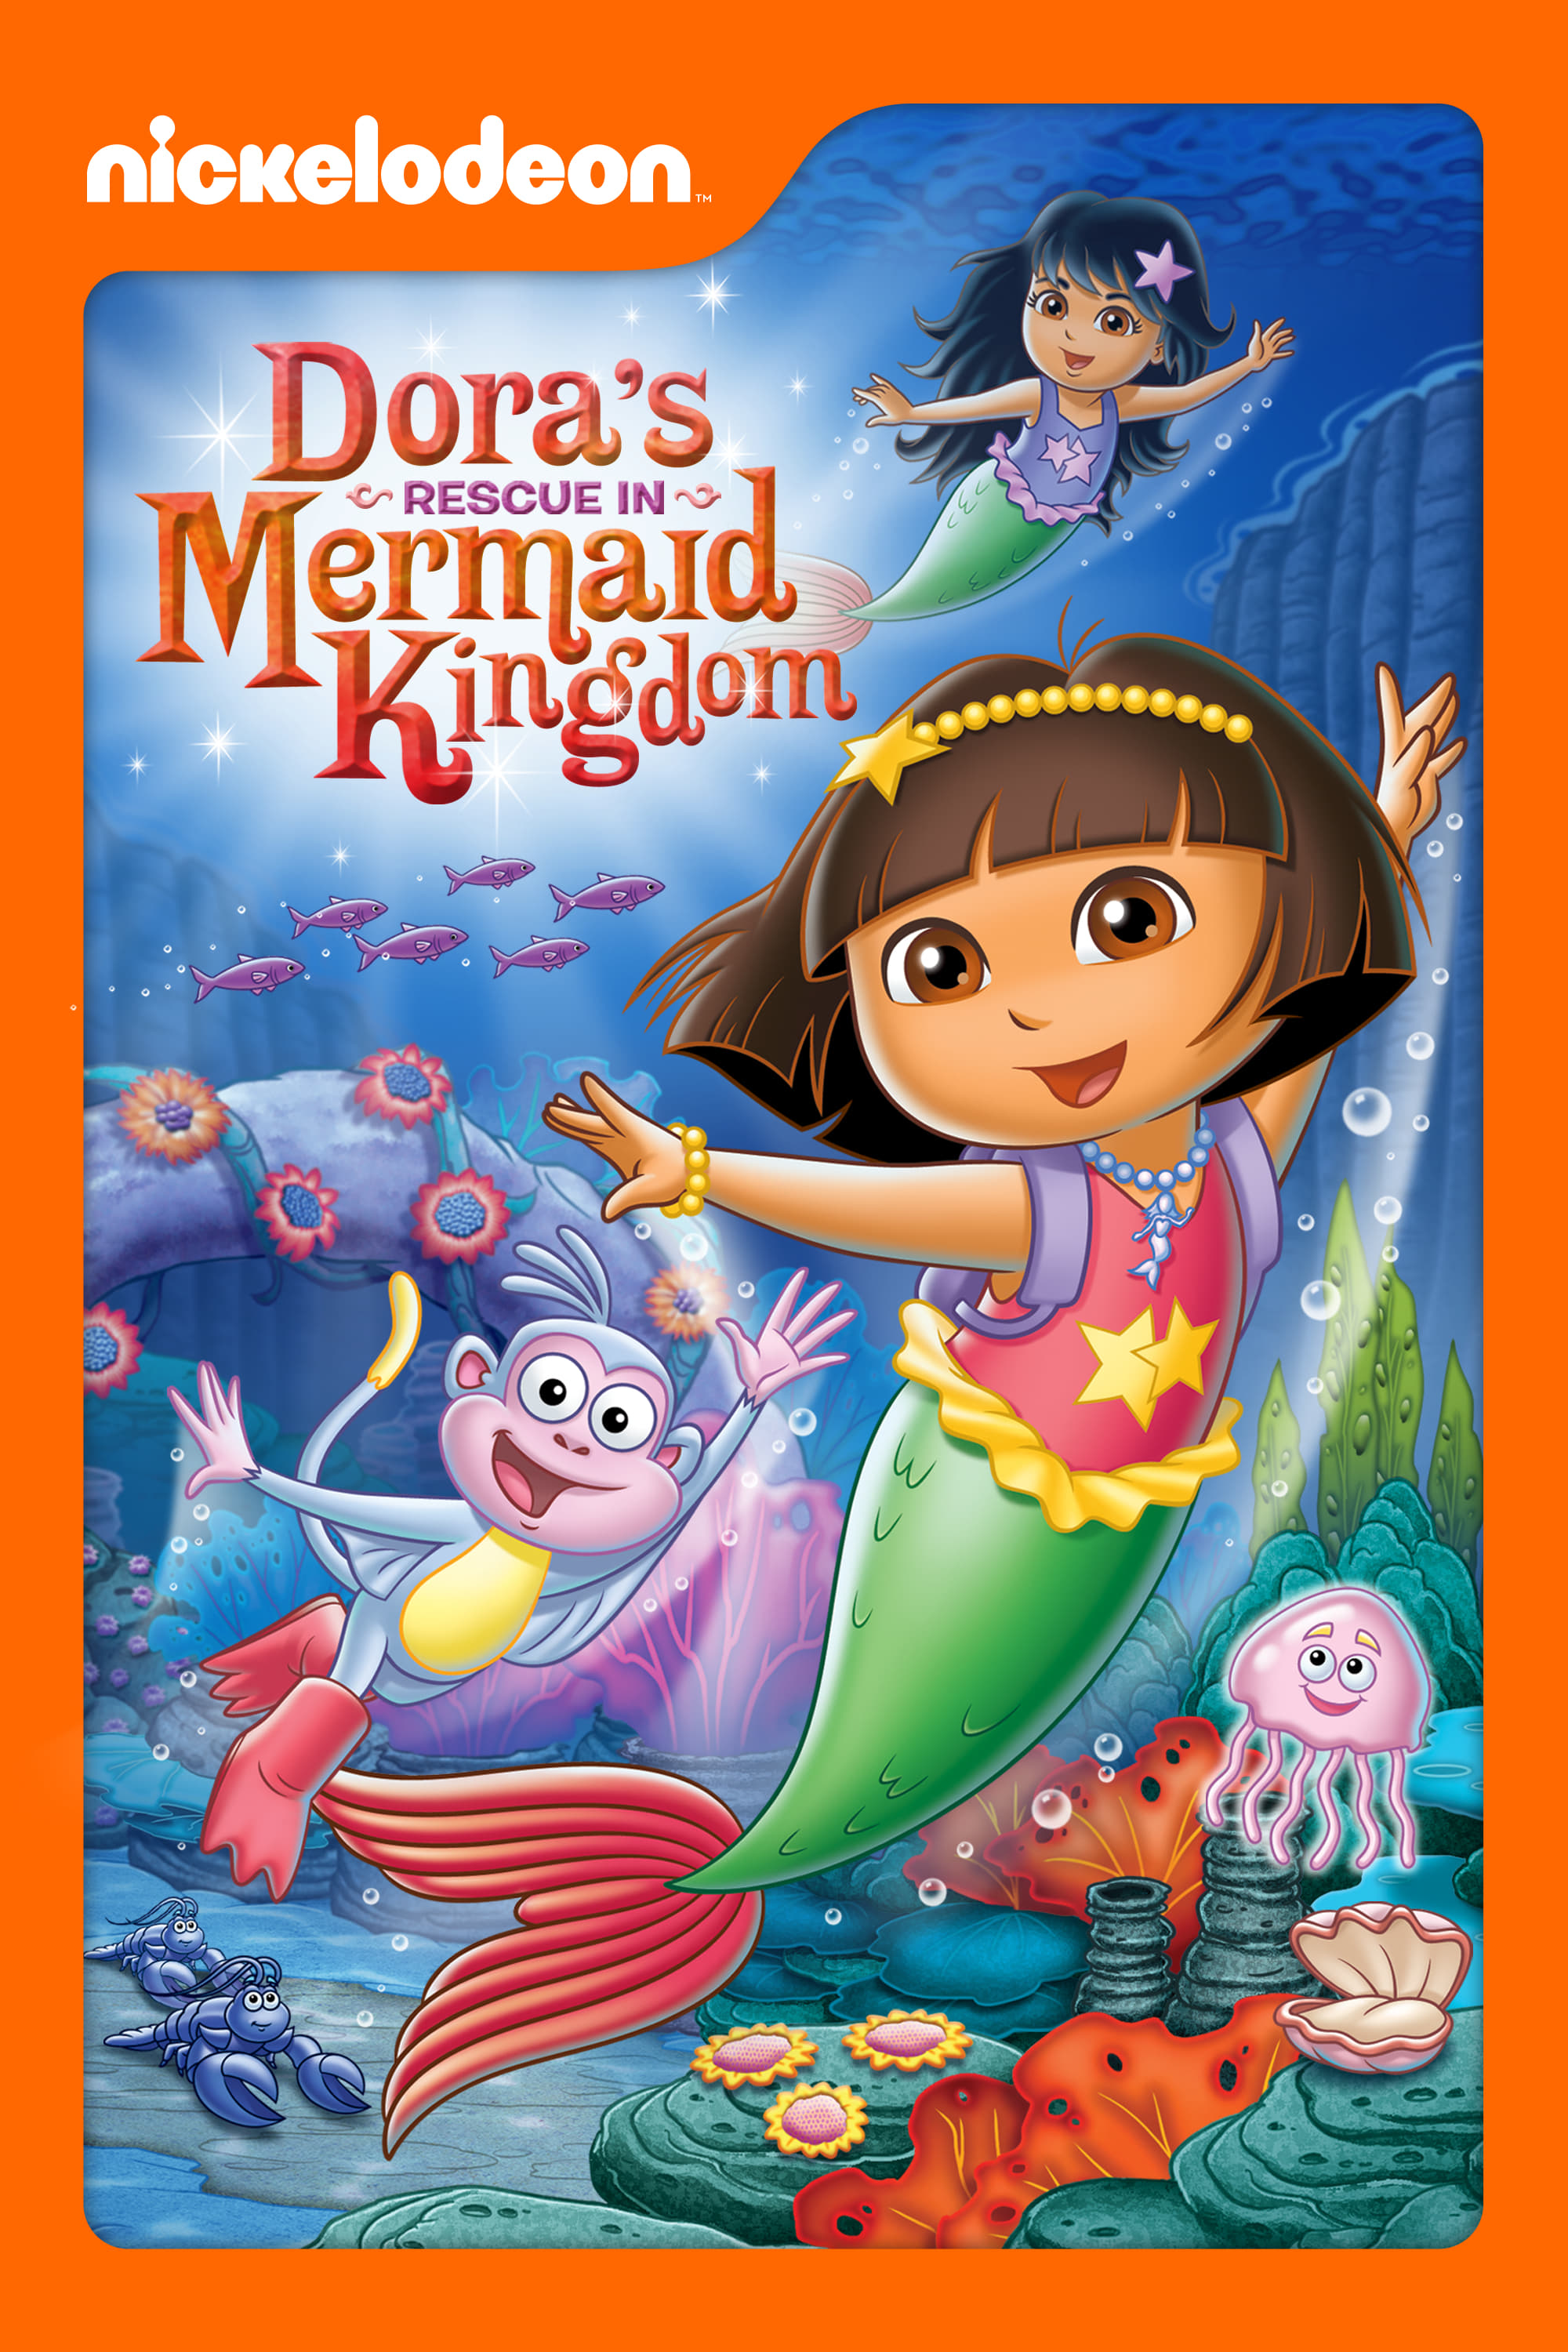 Dora the Explorer: Dora's Rescue in Mermaid Kingdom (2012)